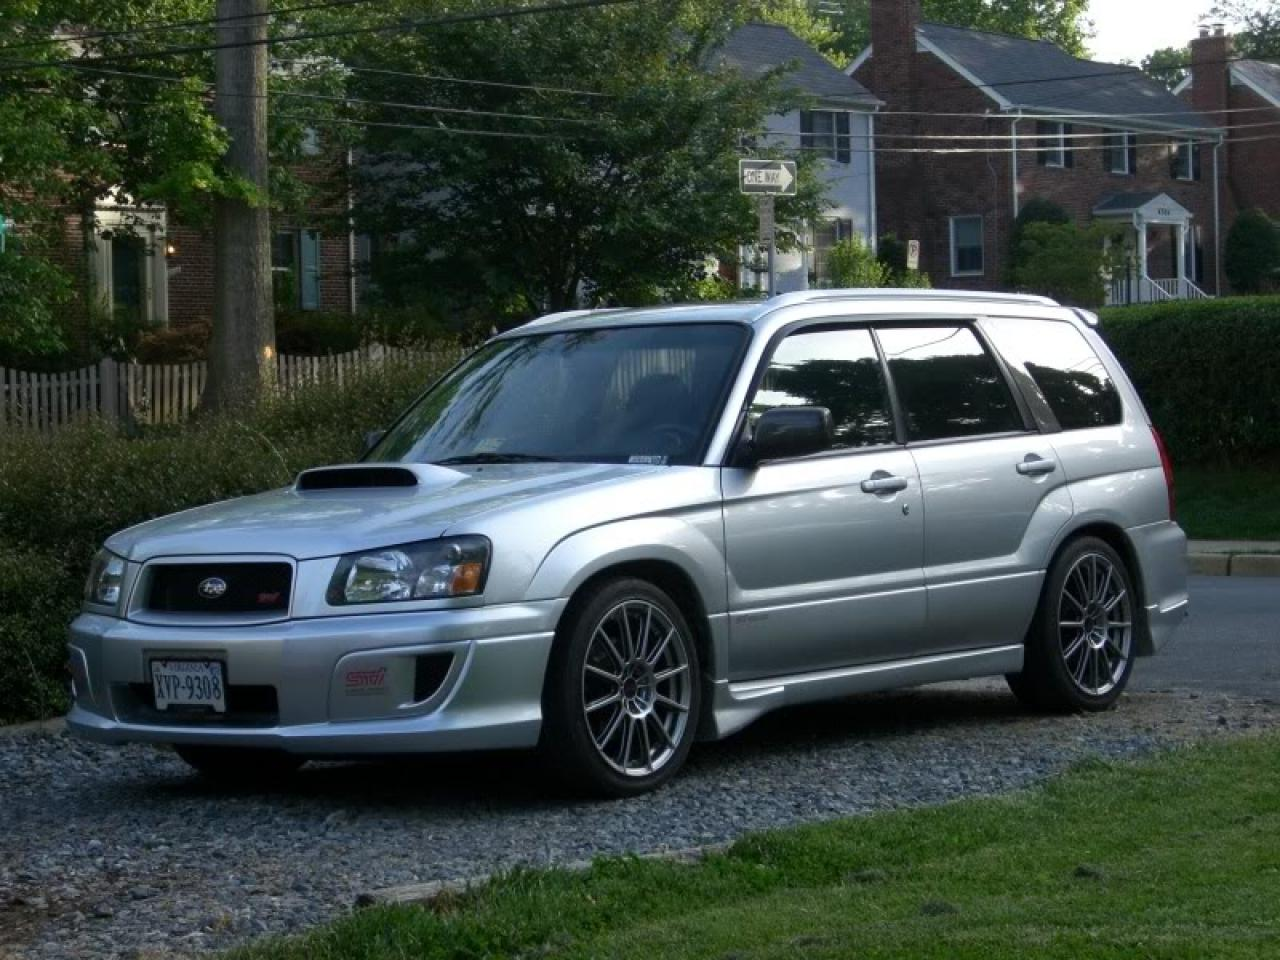 2004 Subaru Forester Information And Photos Zombiedrive